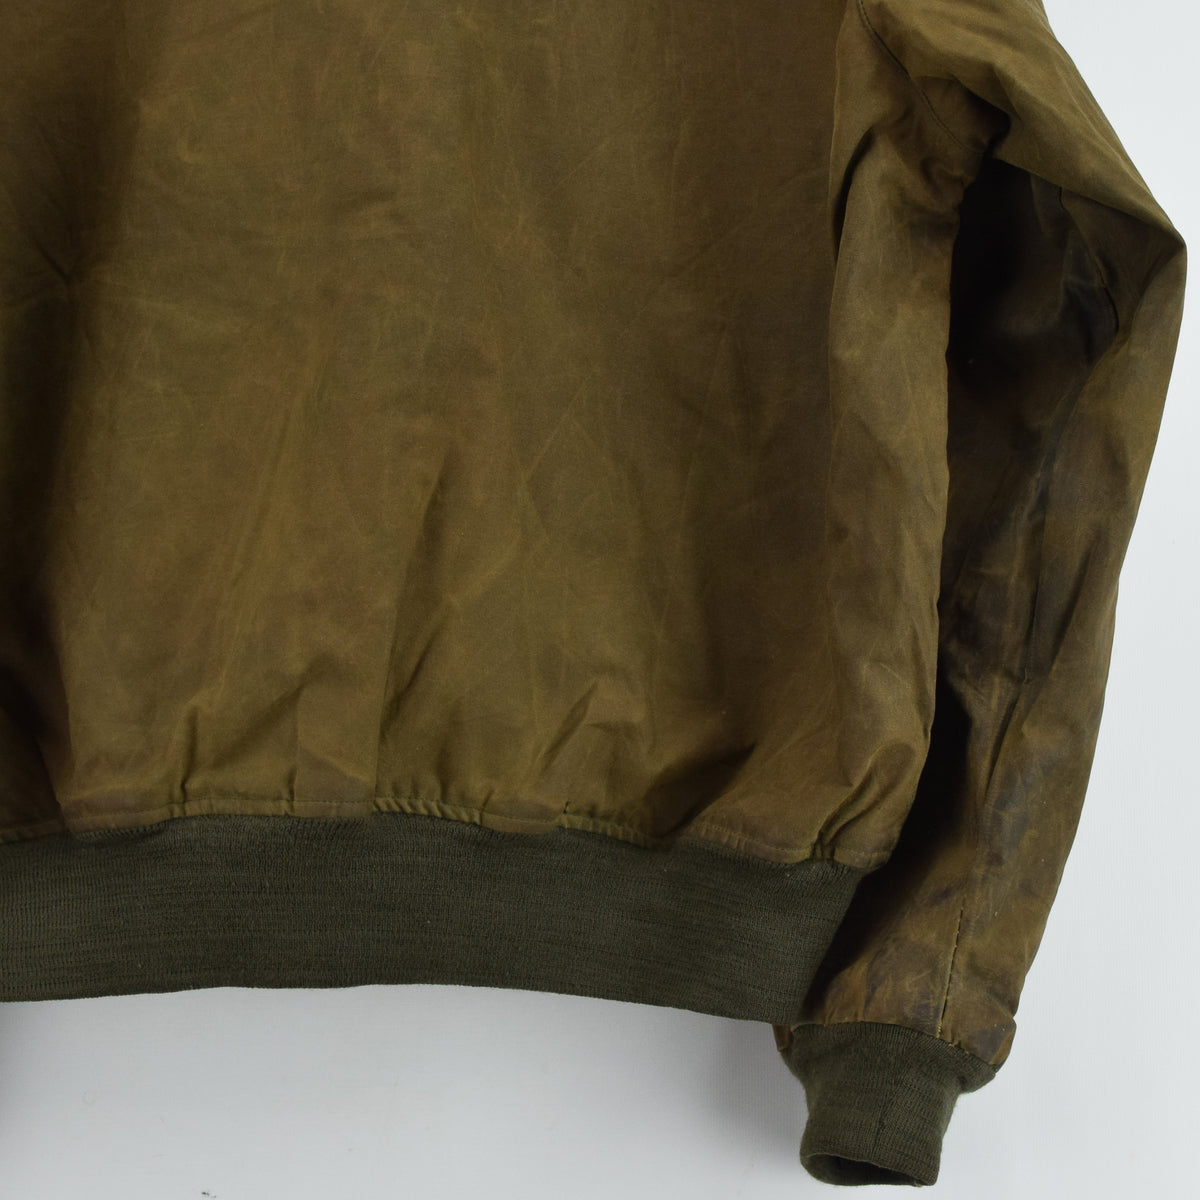 Ralph Lauren Polo Brown Bomber Harrington Waxed Cotton Jacket Made in USA XL back hem